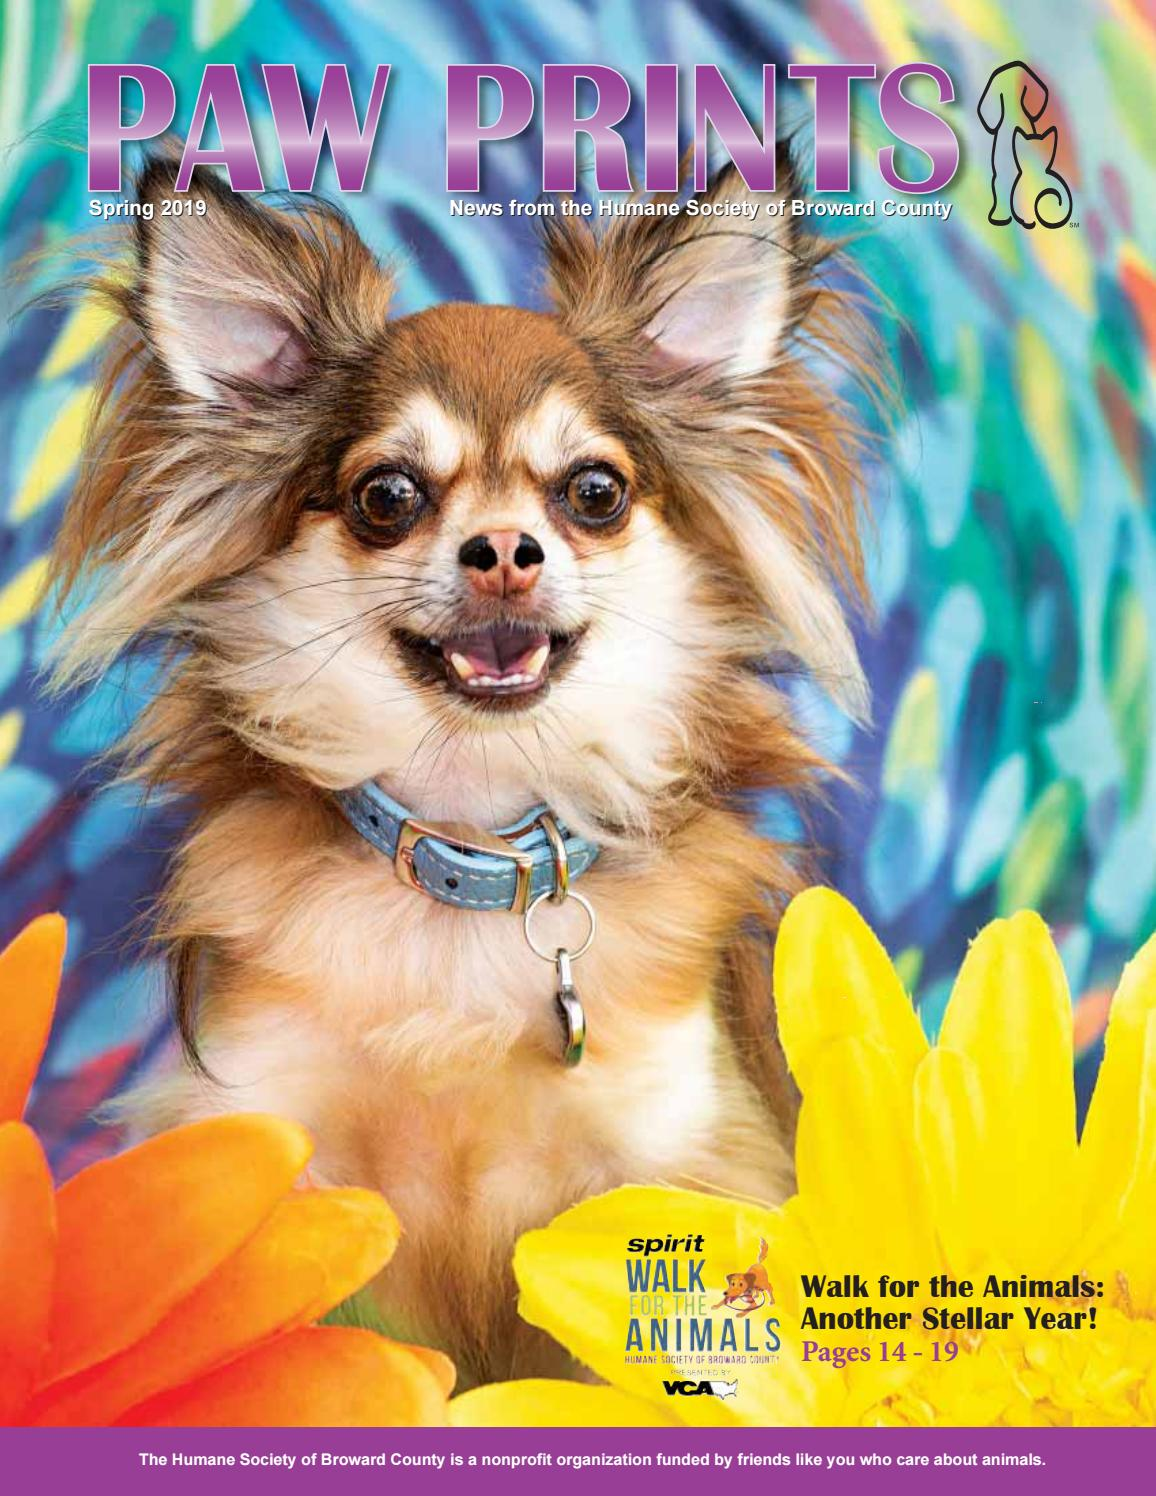 Paw Prints Summer 2019 Edition by Humane Society of Broward